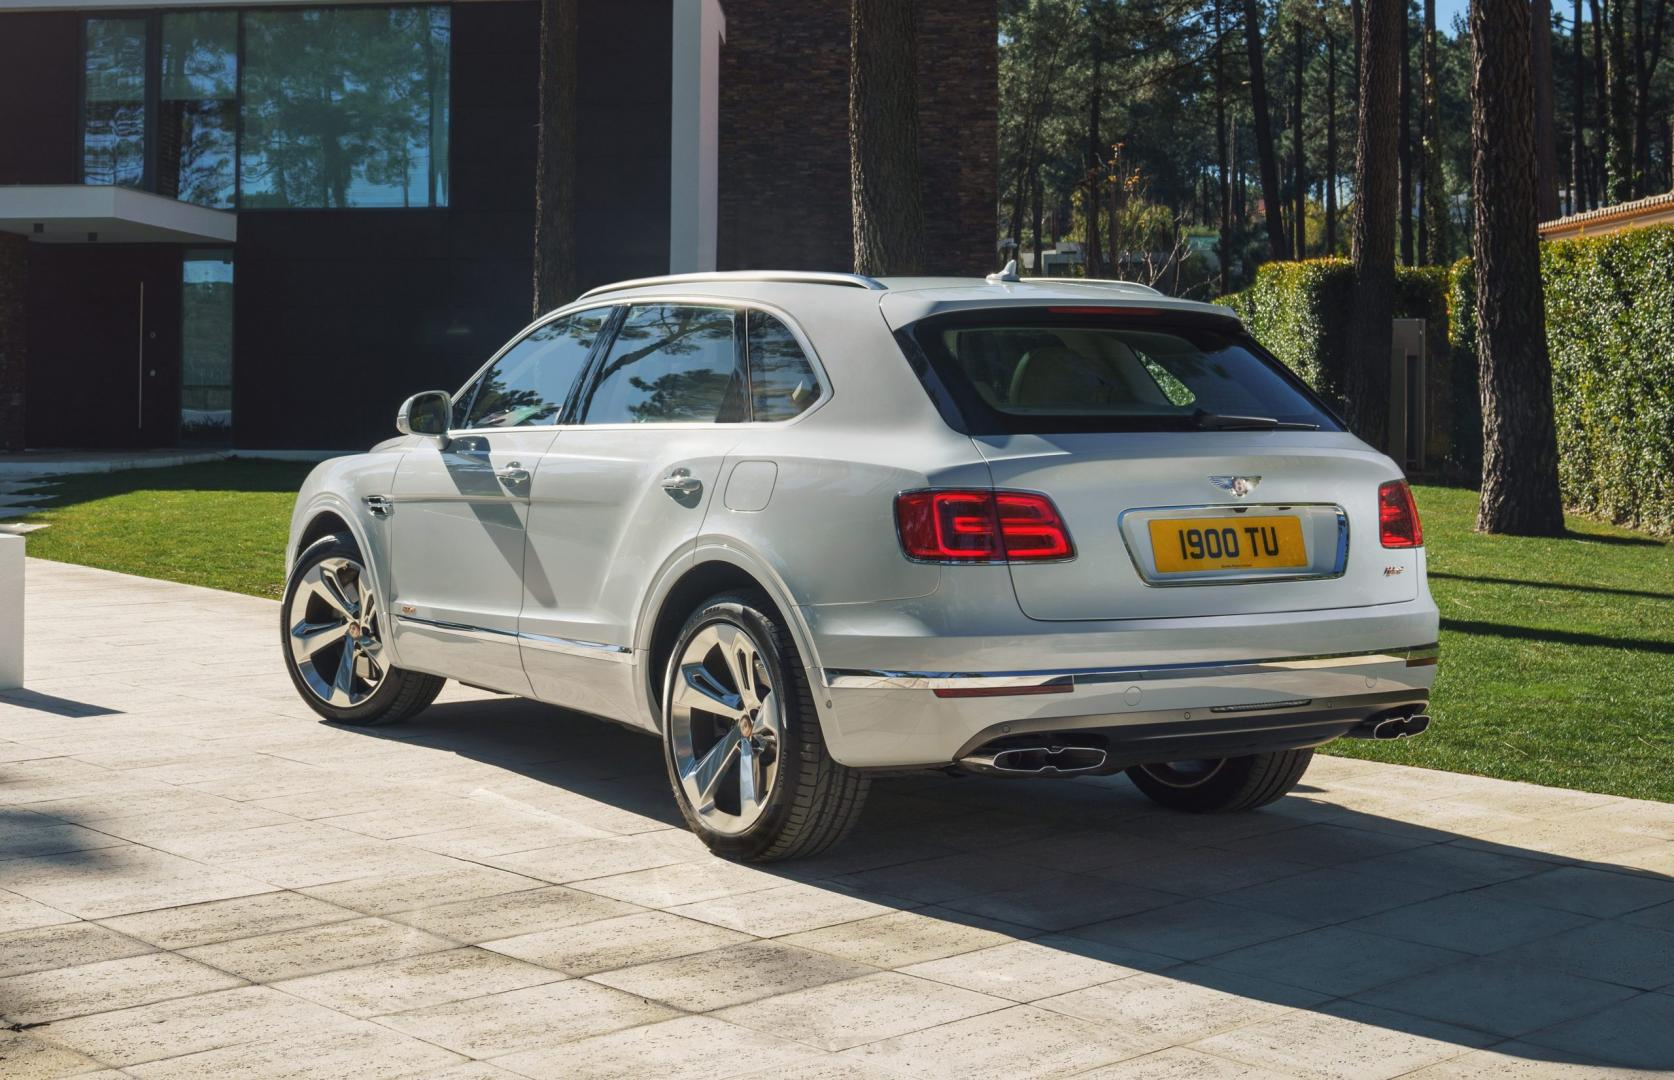 Bentley Bentayga Hybrid linksachter inrit